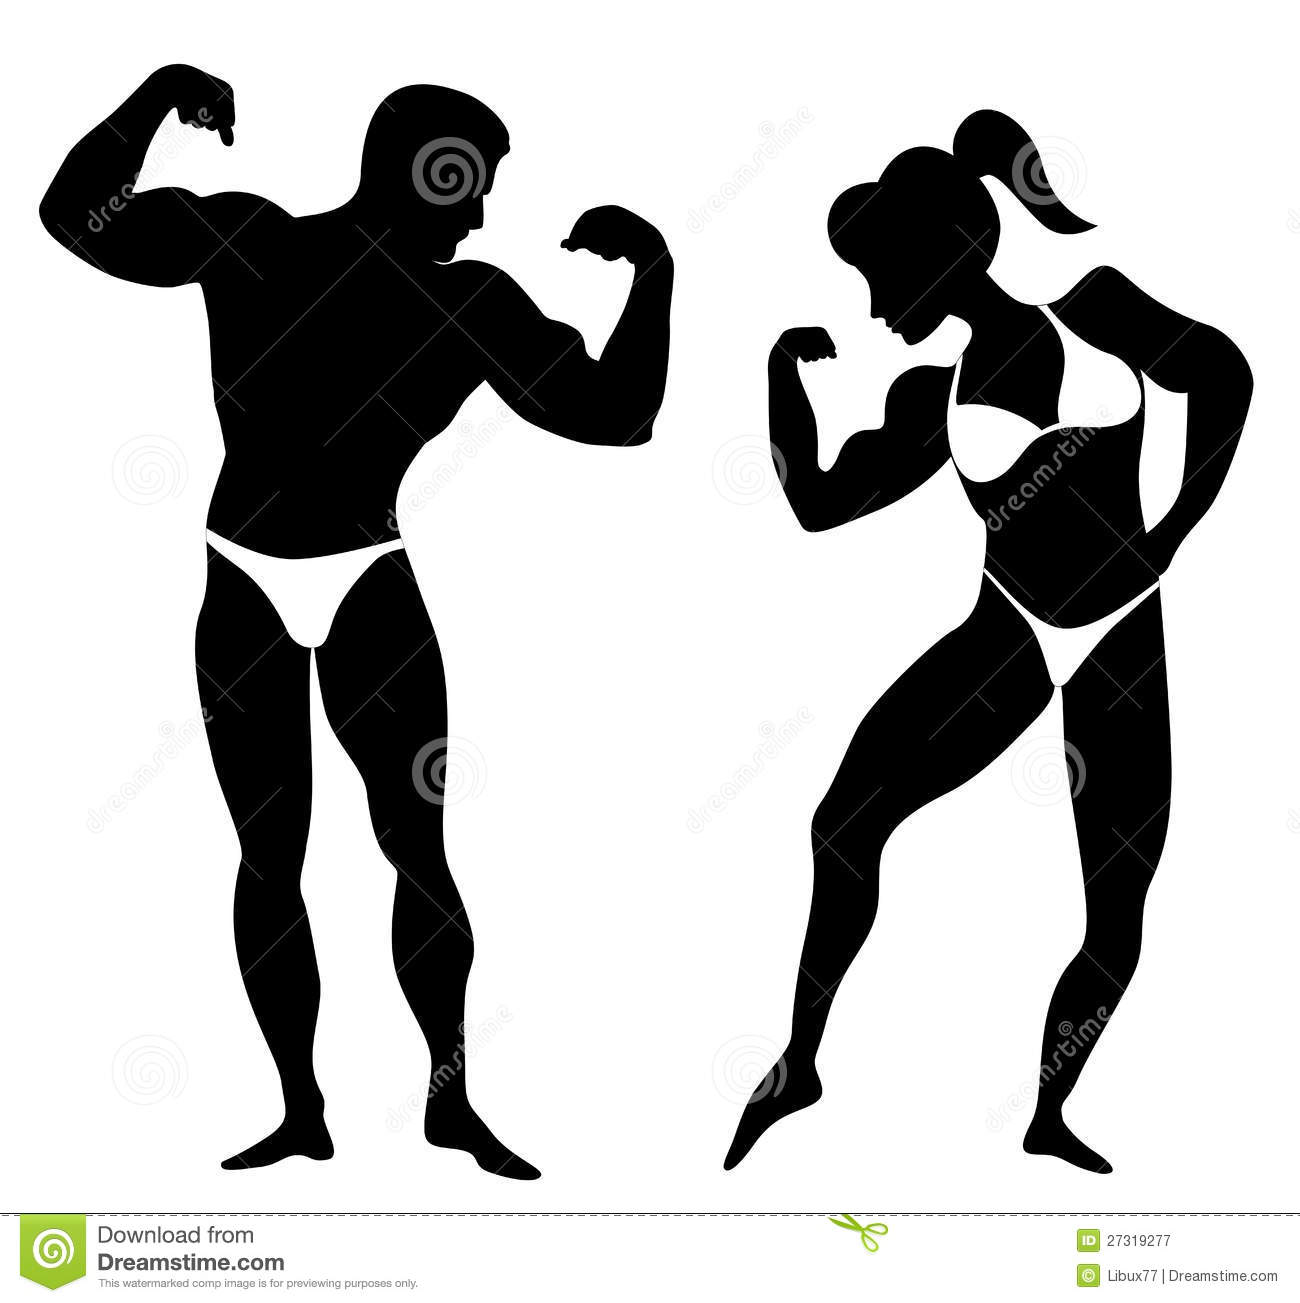 Silhouette Of A Man And A Woman Body Builders Showing Their Muscles